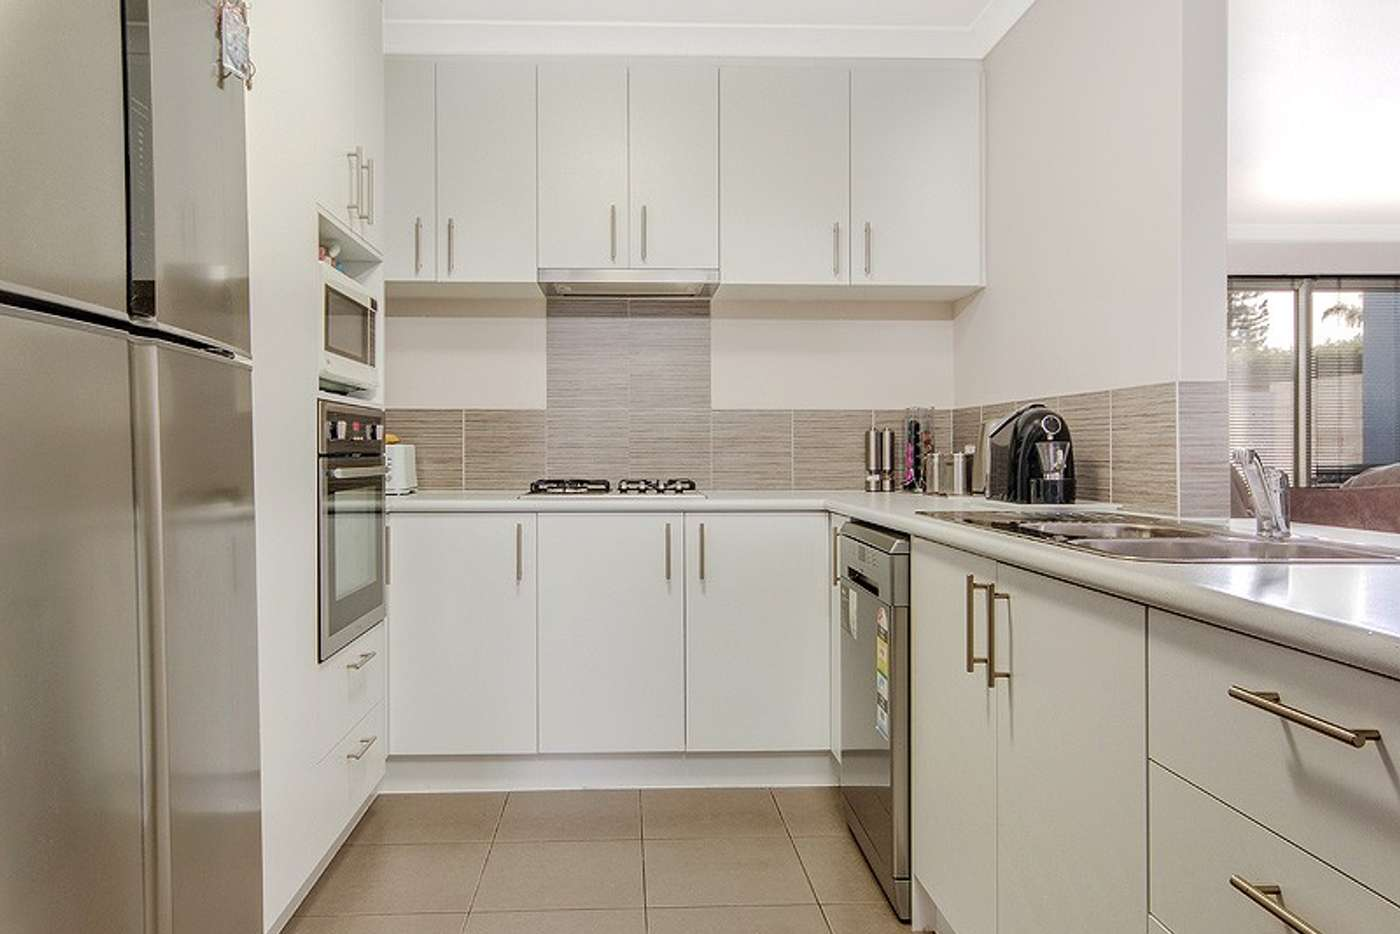 Seventh view of Homely house listing, 3 McDermott Road, Kwinana Town Centre WA 6167